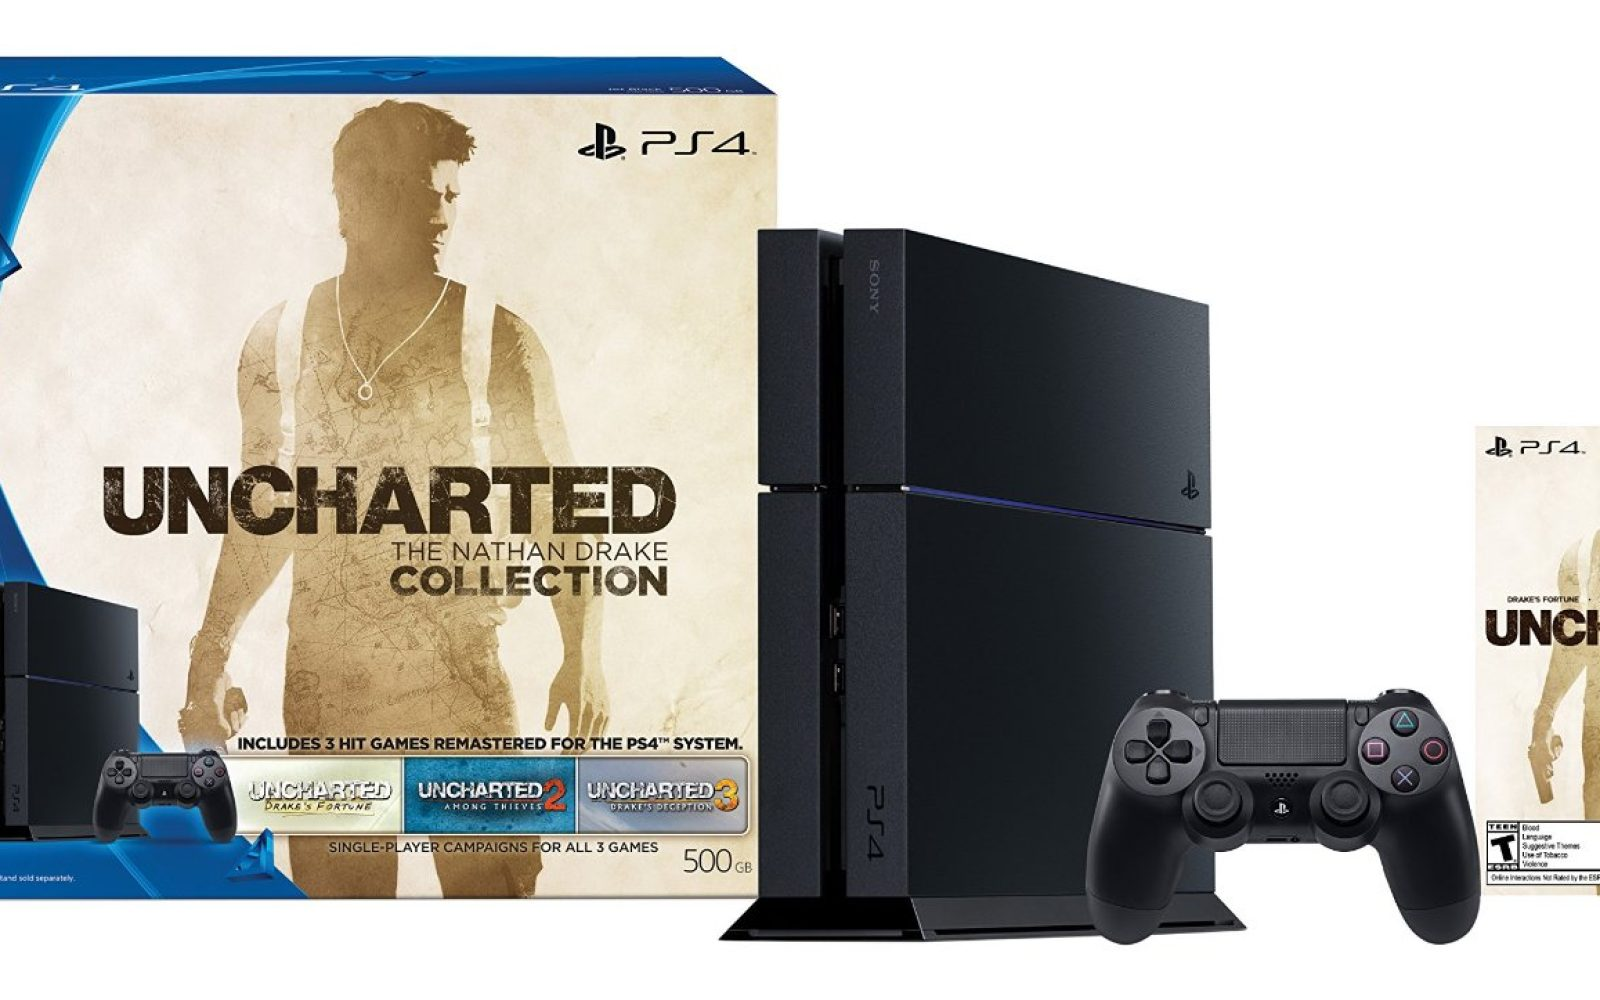 Sony Playstation 4 9to5toys Ps4 500gb Dvd Fifa 2015 Black Friday Console Deals Xbox One Gears Of War 60 Gift Card 300 Bundles Under Wii U 3ds More